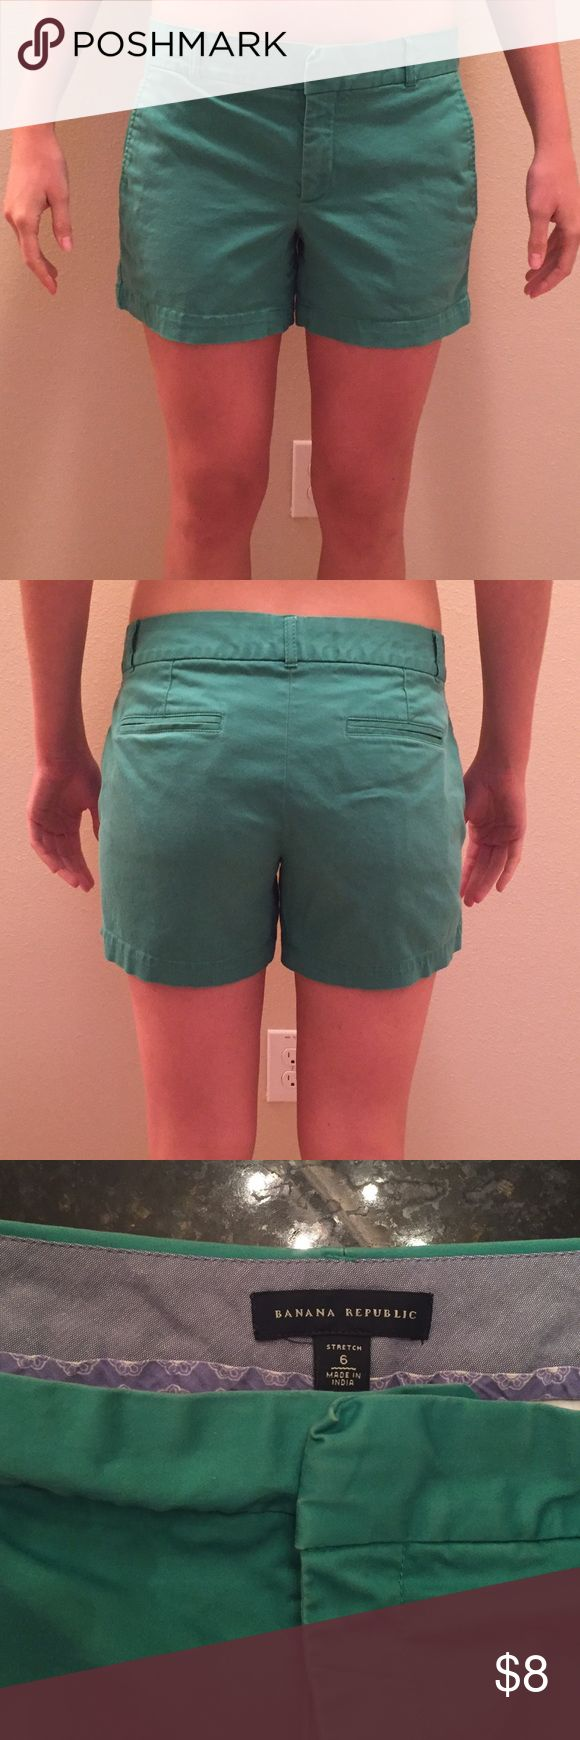 Banana Republic shorts Banana republic shorts with some stretch to them-- 98% cotton, 2% spandex. Slightly distressed green color. Grab these now for your spring break wardrobe! Banana Republic Shorts